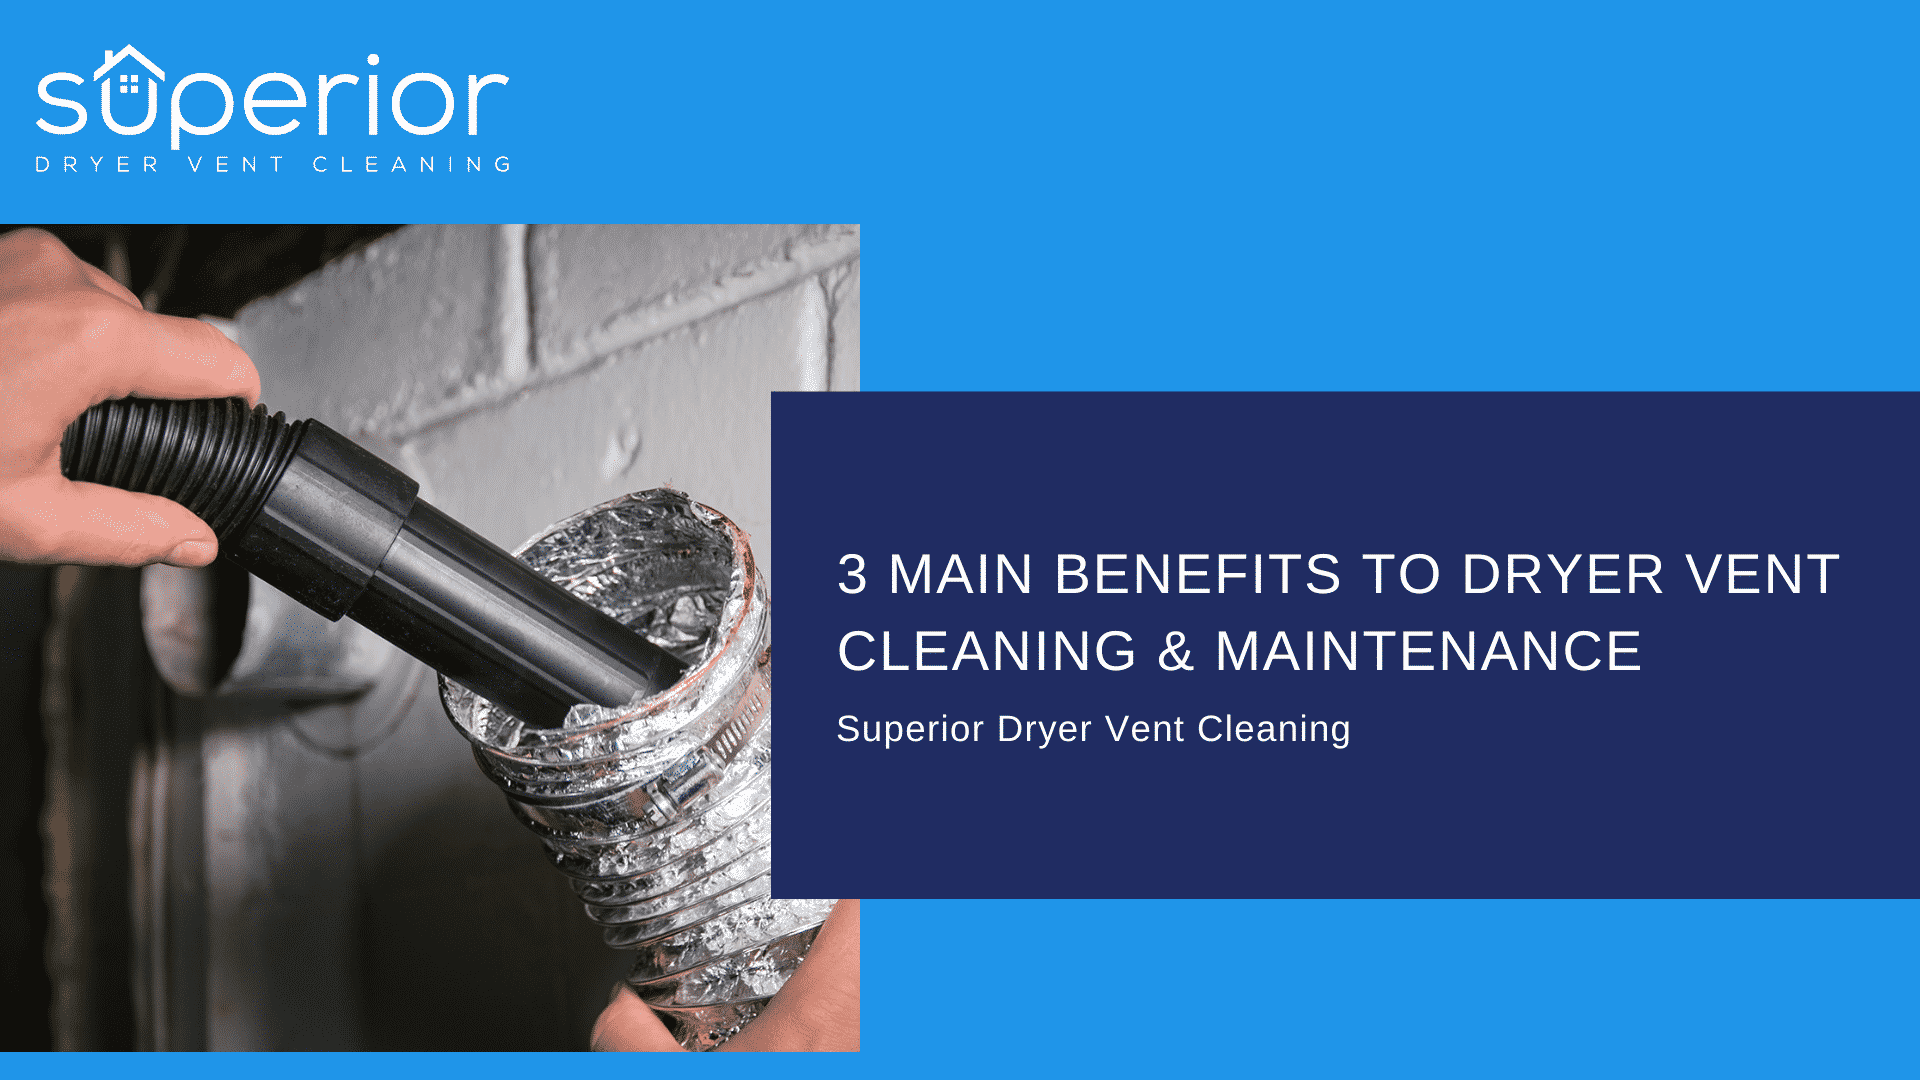 3 Main Benefits to Dryer Vent Cleaning & Maintenance